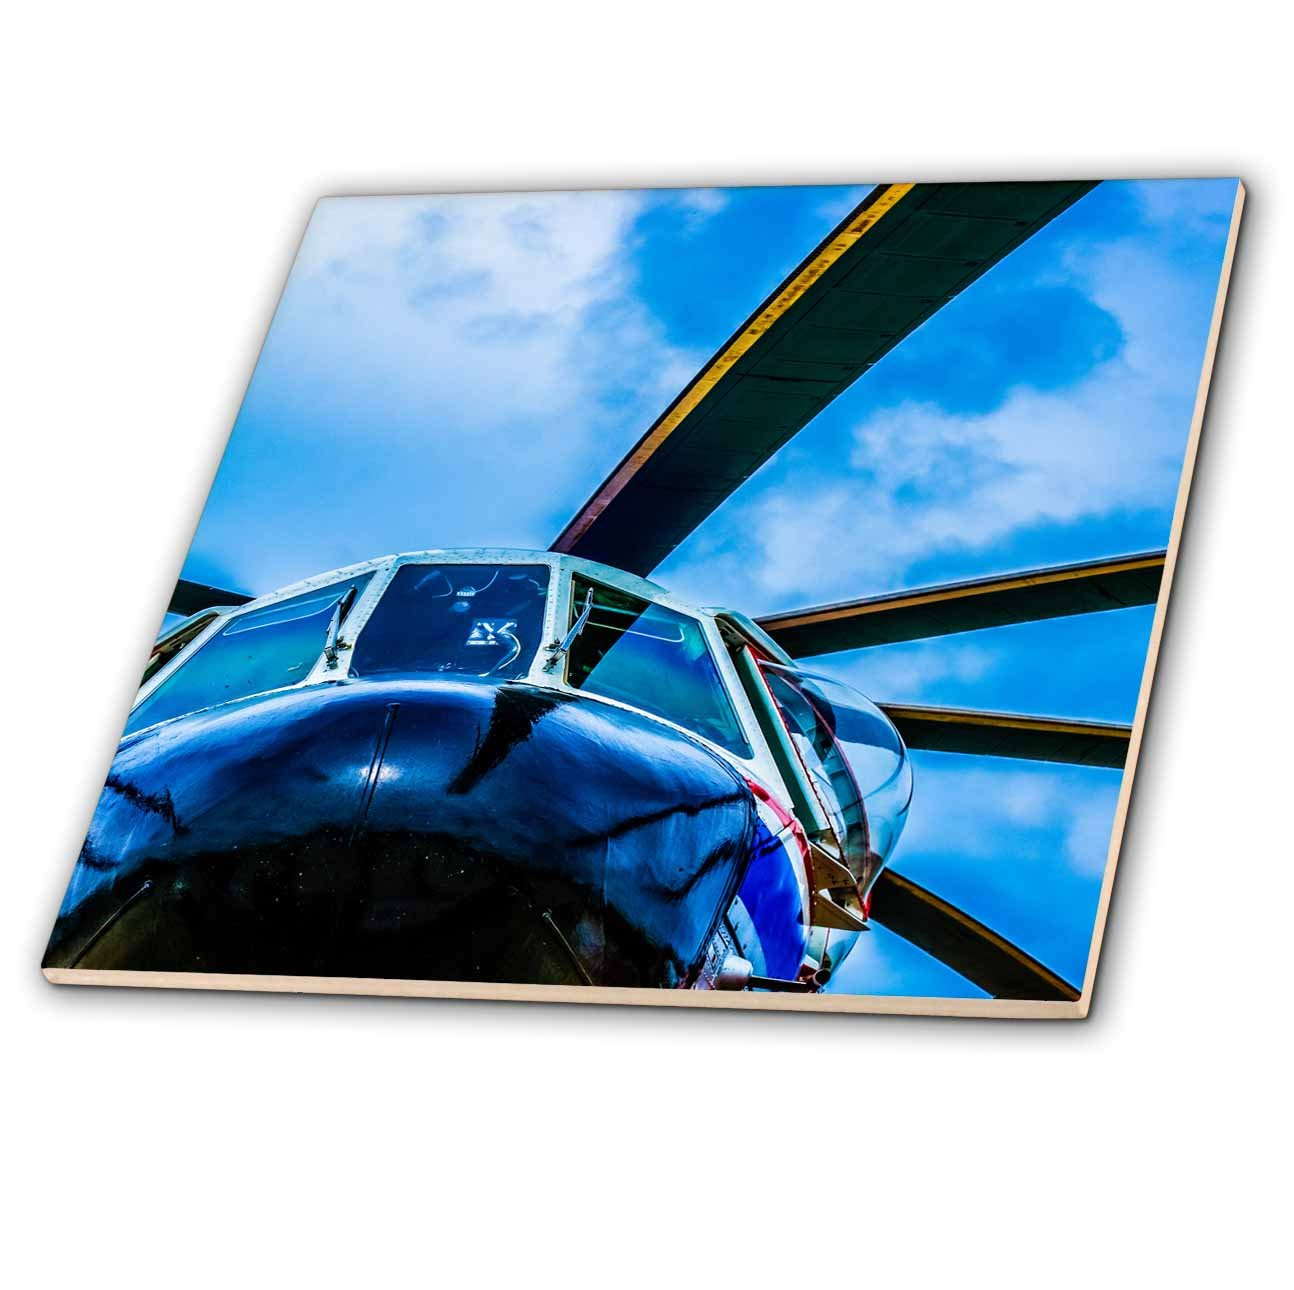 3dRose Alexis Photography - Transport Air - Colorful view of a helicopter nose, rotor blades and sky - 8 Inch Ceramic Tile (ct_267363_3) by 3dRose (Image #1)